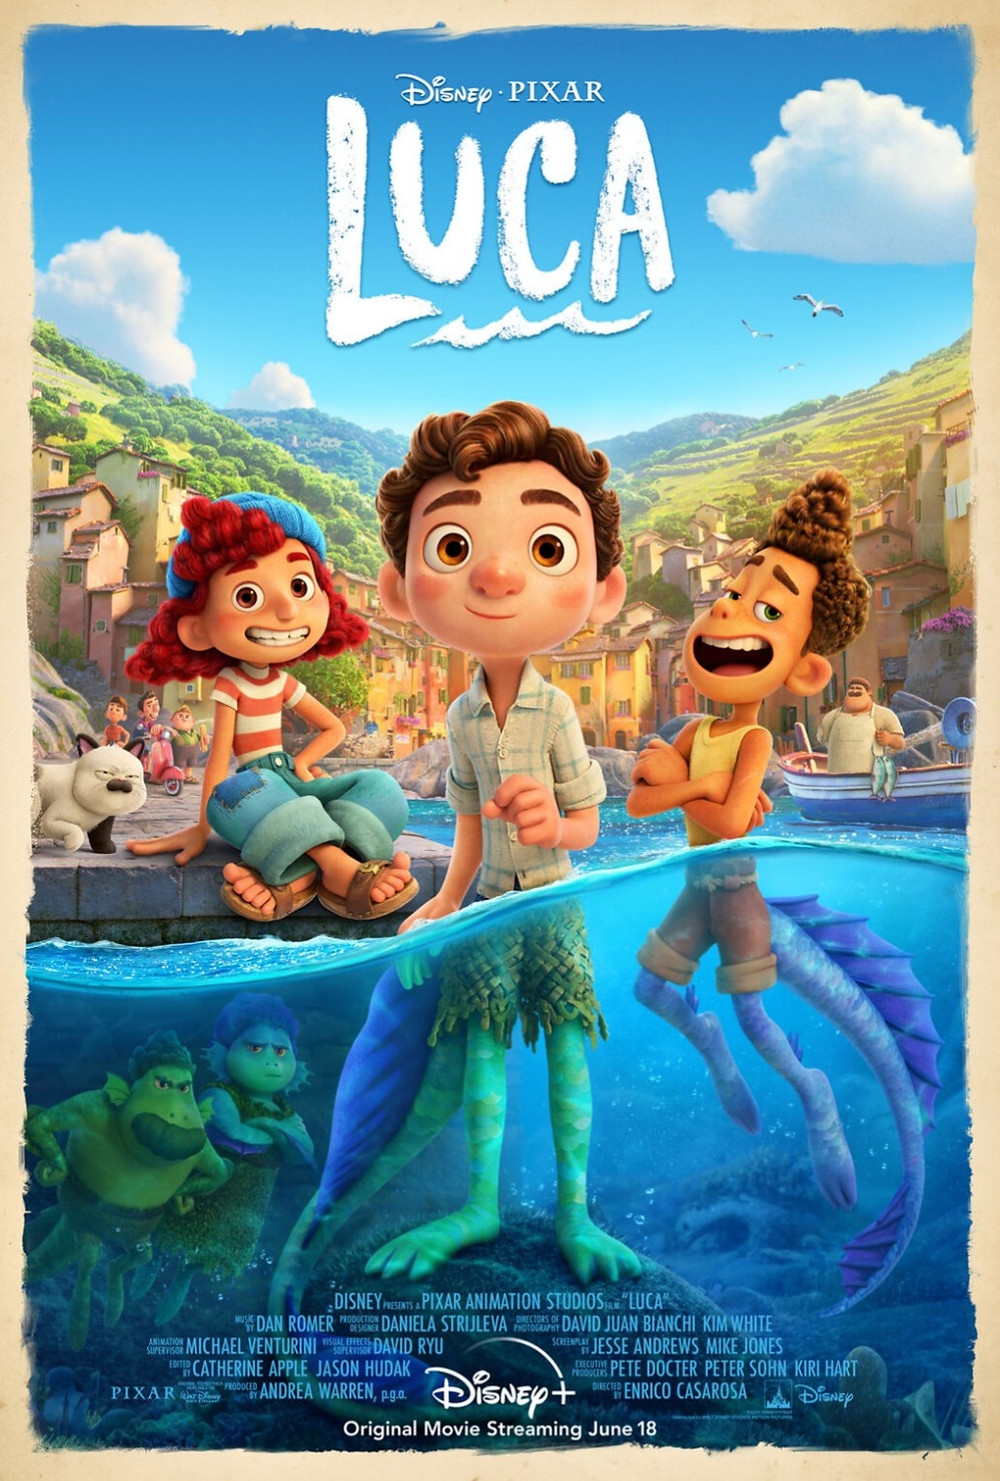 Theatrical poster for Pixar's Luca (2021).